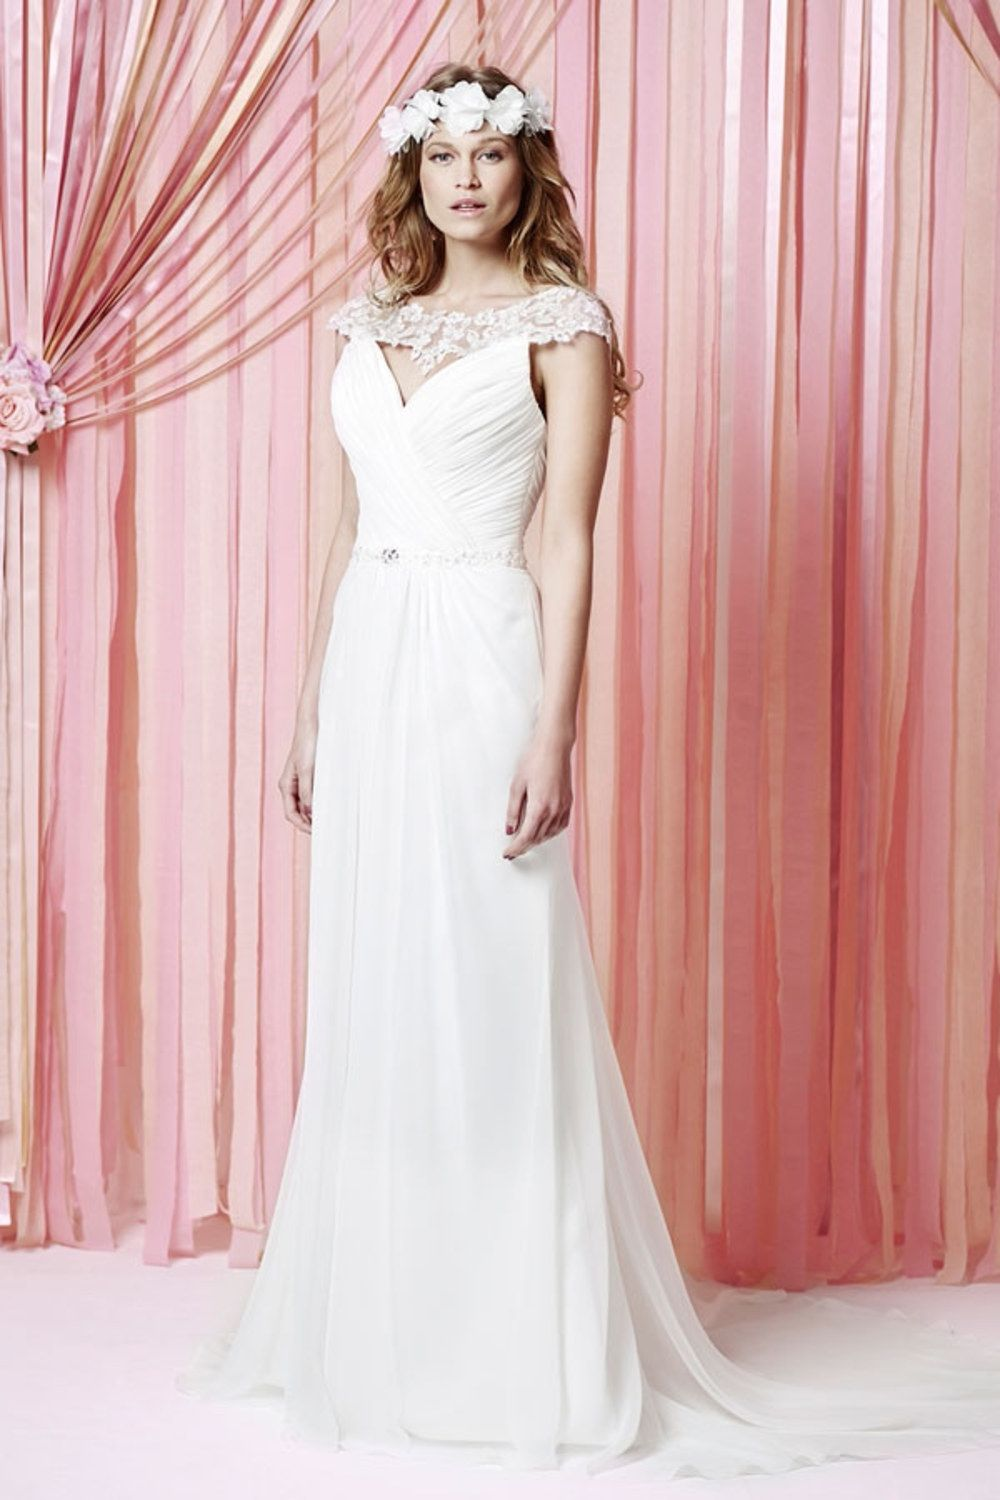 2019 wedding dress style quiz cute dresses for a wedding check 2019 wedding dress style quiz cute dresses for a wedding check more at http junglespirit Choice Image